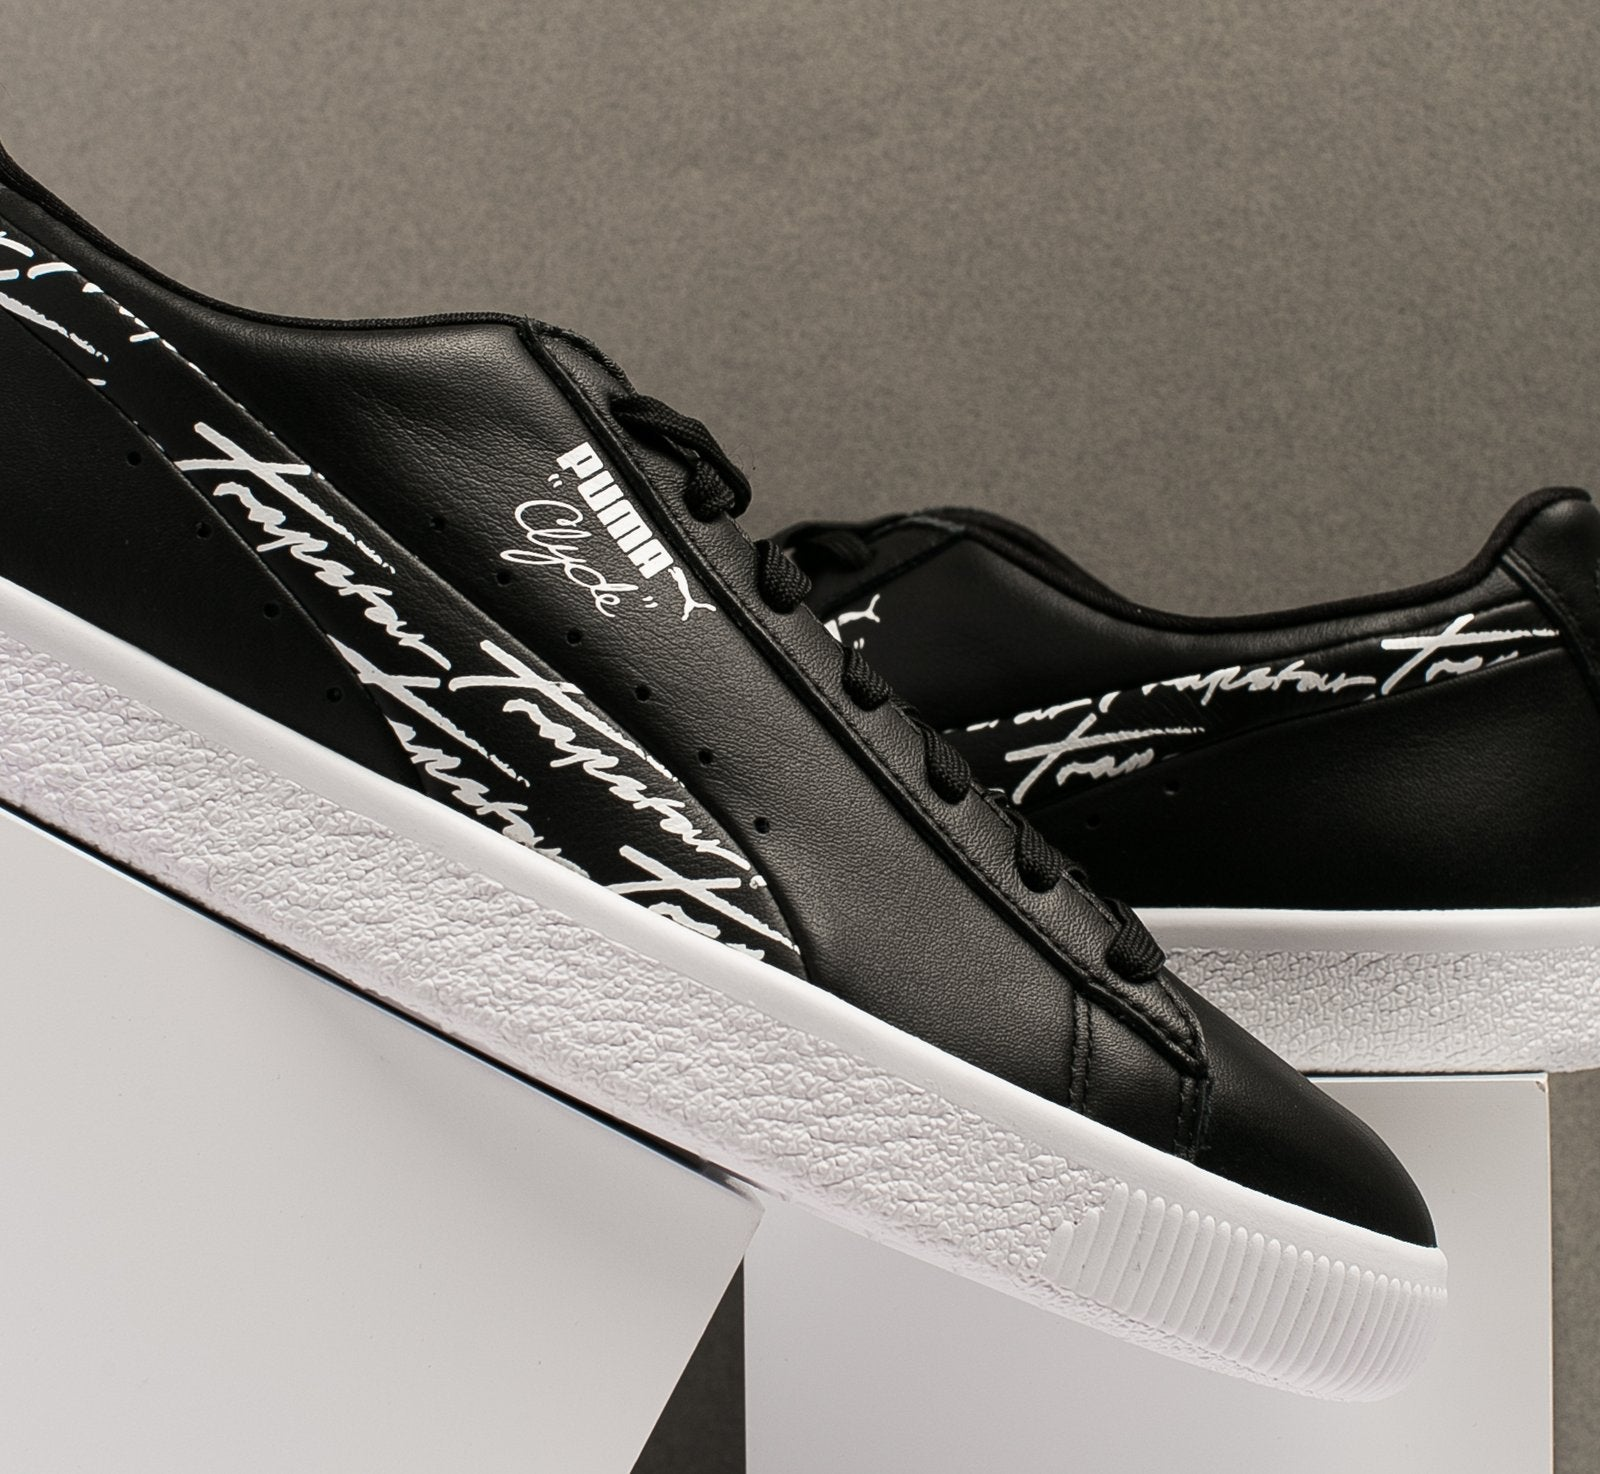 PUMA x TRAPSTAR CLYDE - Oneness Boutique